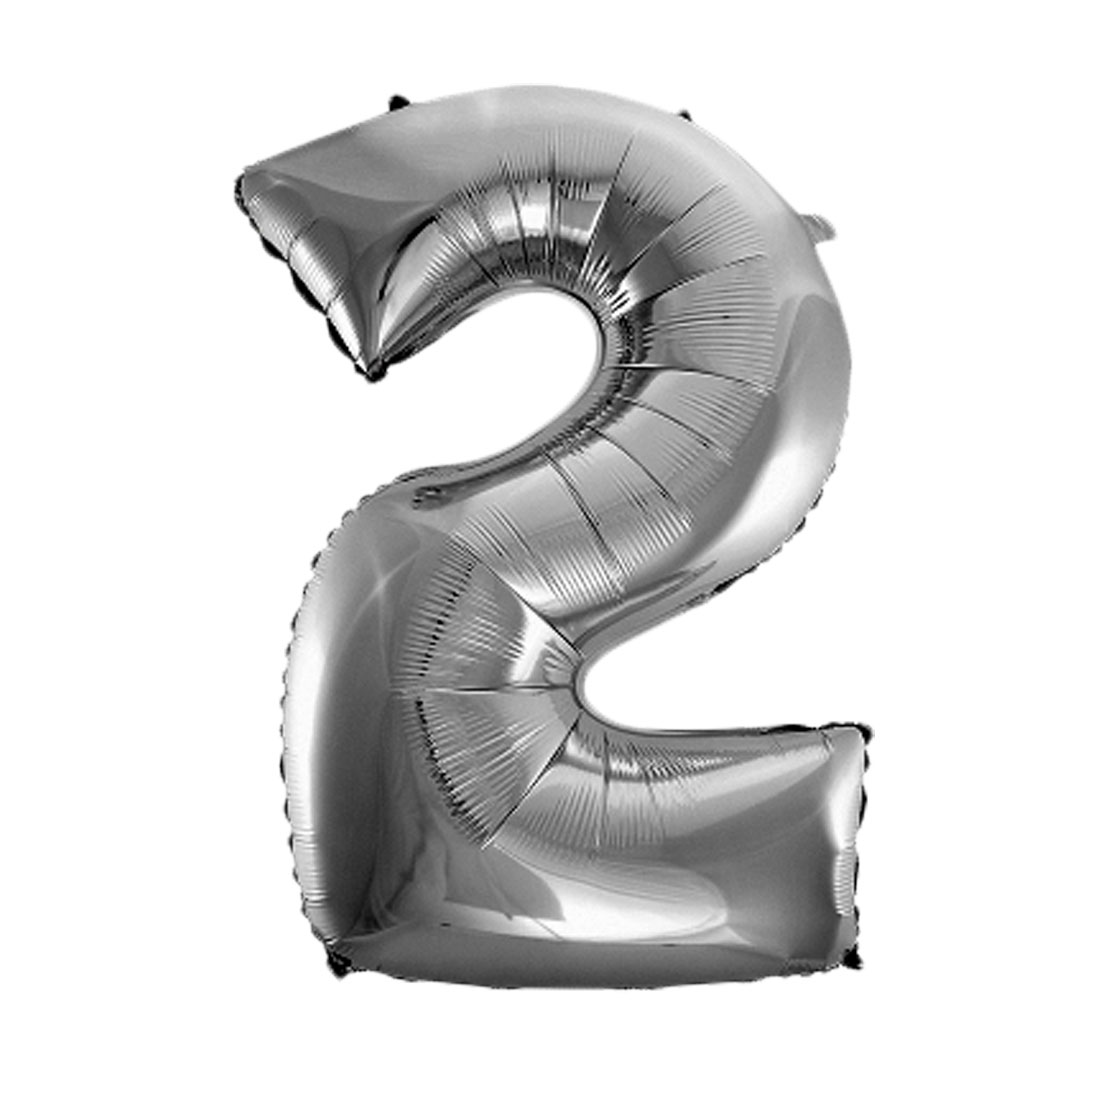 Unique Bargains Foil Number 2 Shape Helium Balloon Birthday Wedding Decor Silver Tone 30""